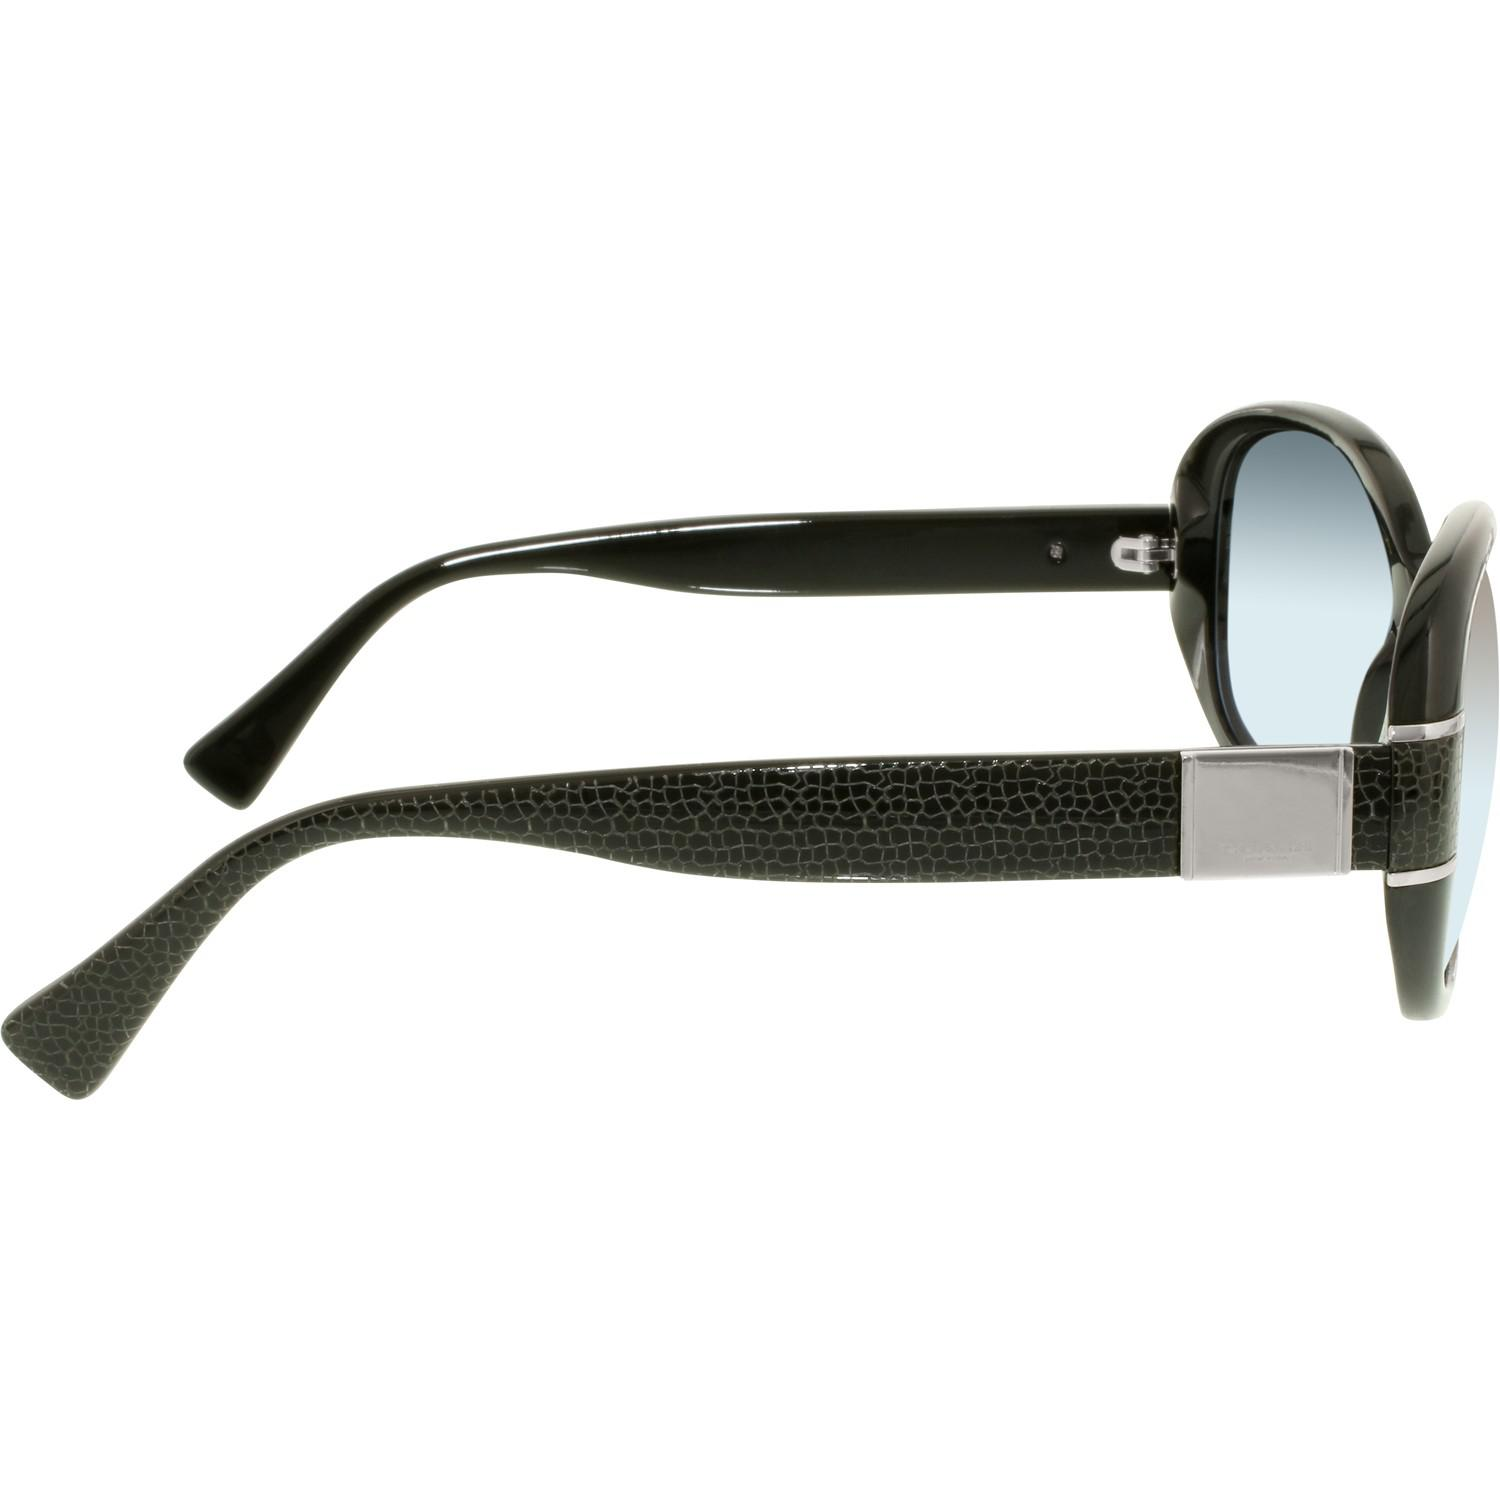 be8c0d894ea6 ... coupon code for lyst coach blaine hc8115 500217 57 black oval sunglasses  in black 38314 cd25b ...